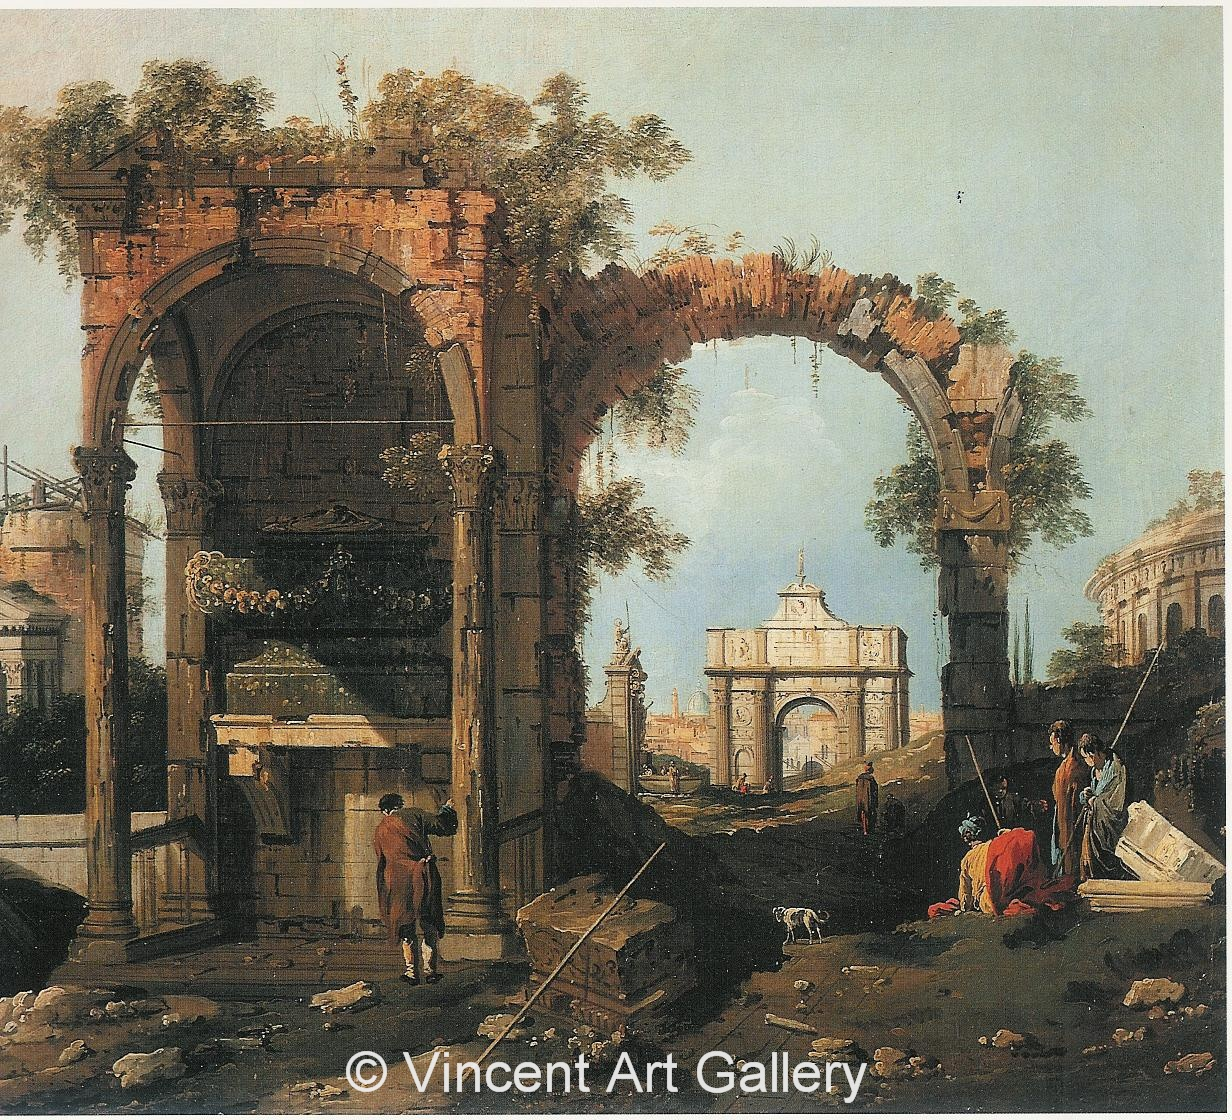 A1033, CANALETTO, Landscape with Ruins